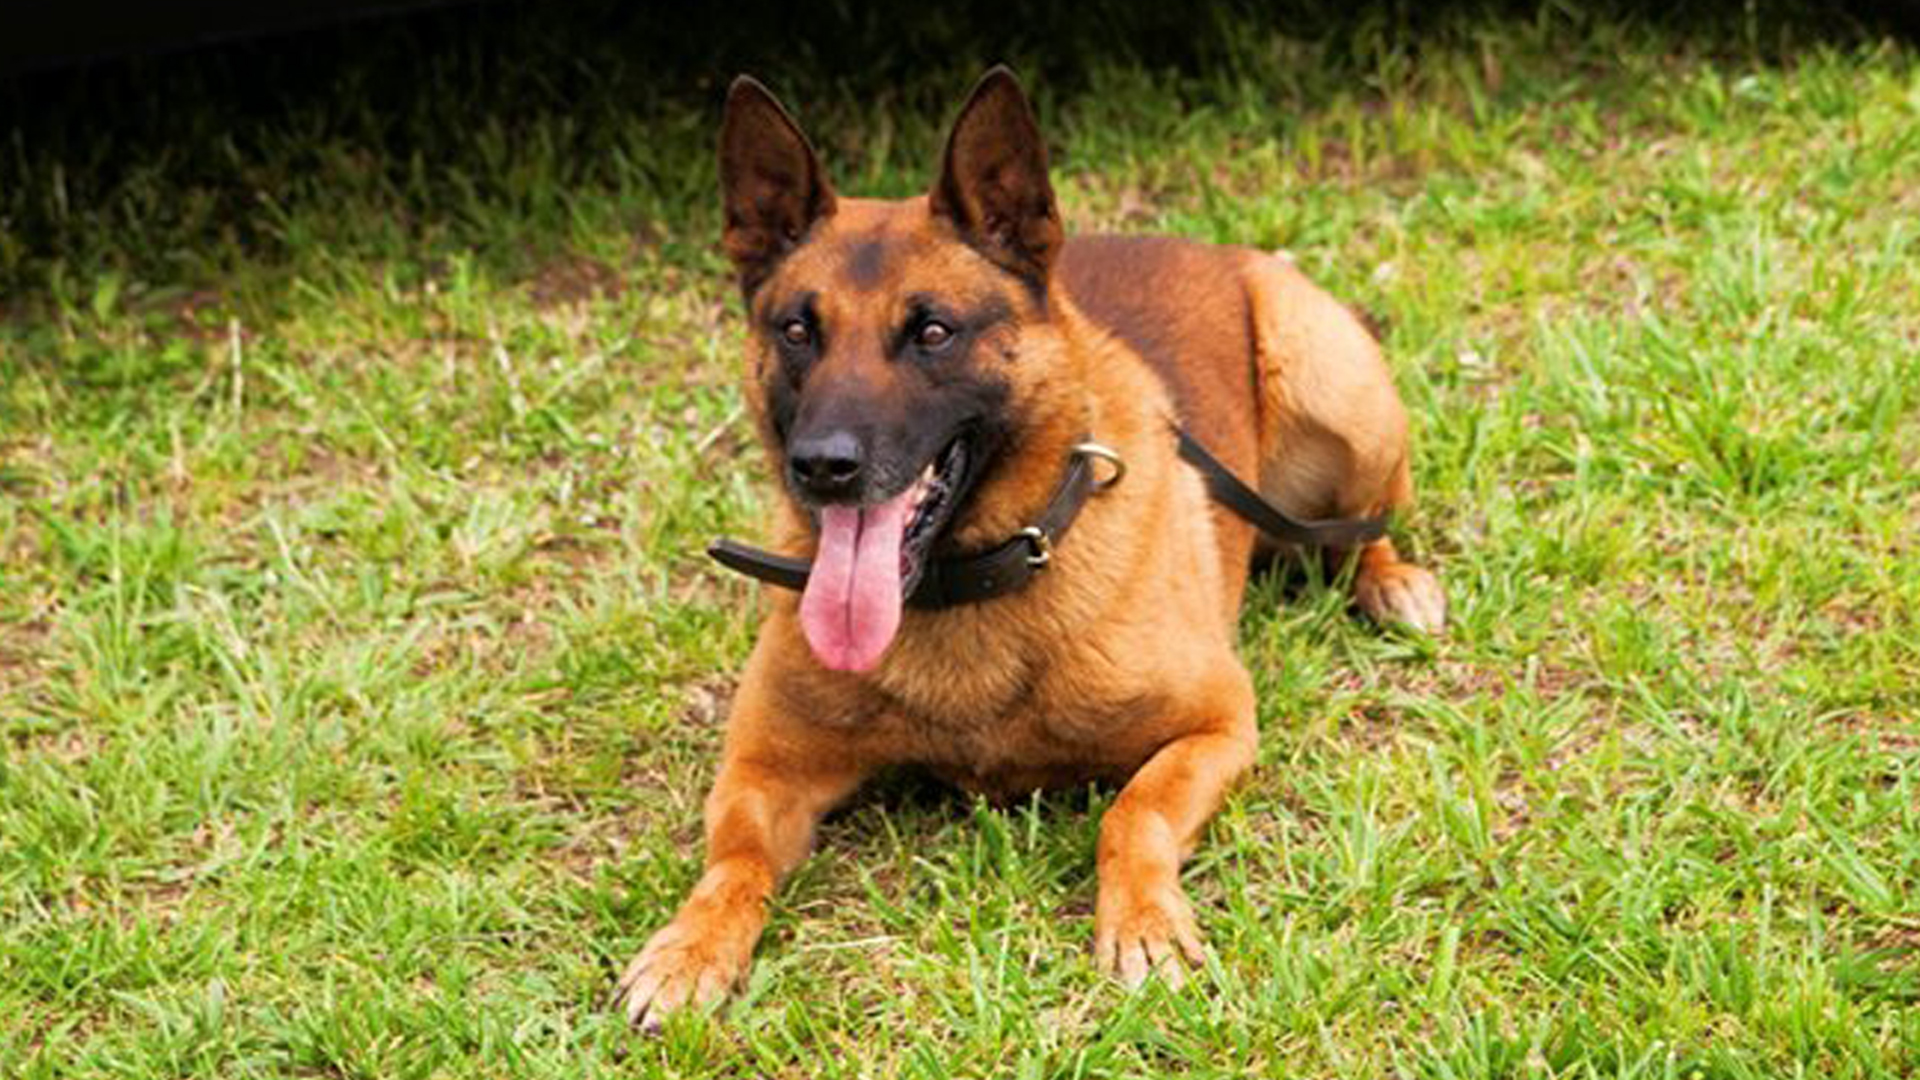 K9 Eli is seen in a photo released by the Gwinnett County Police Department.